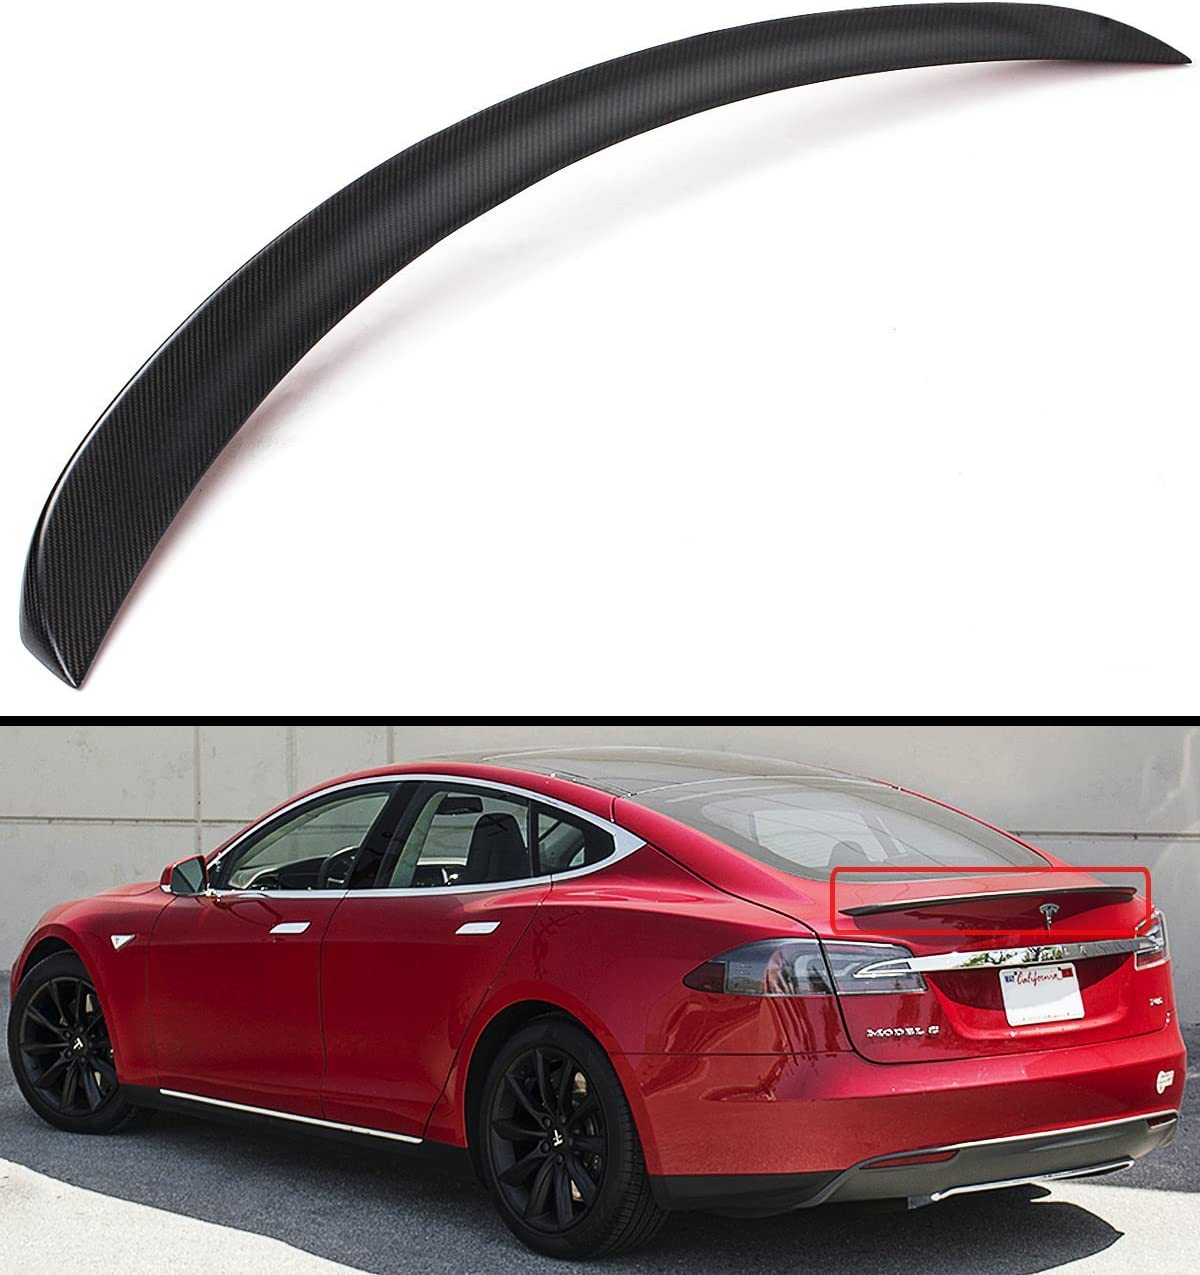 Cuztom Tuning Fits for 2012-2019 Tesla Model S 60D 75D P85 P90D P100D Glossy Carbon Fiber Factory Style Trunk Lid Spoiler Wing